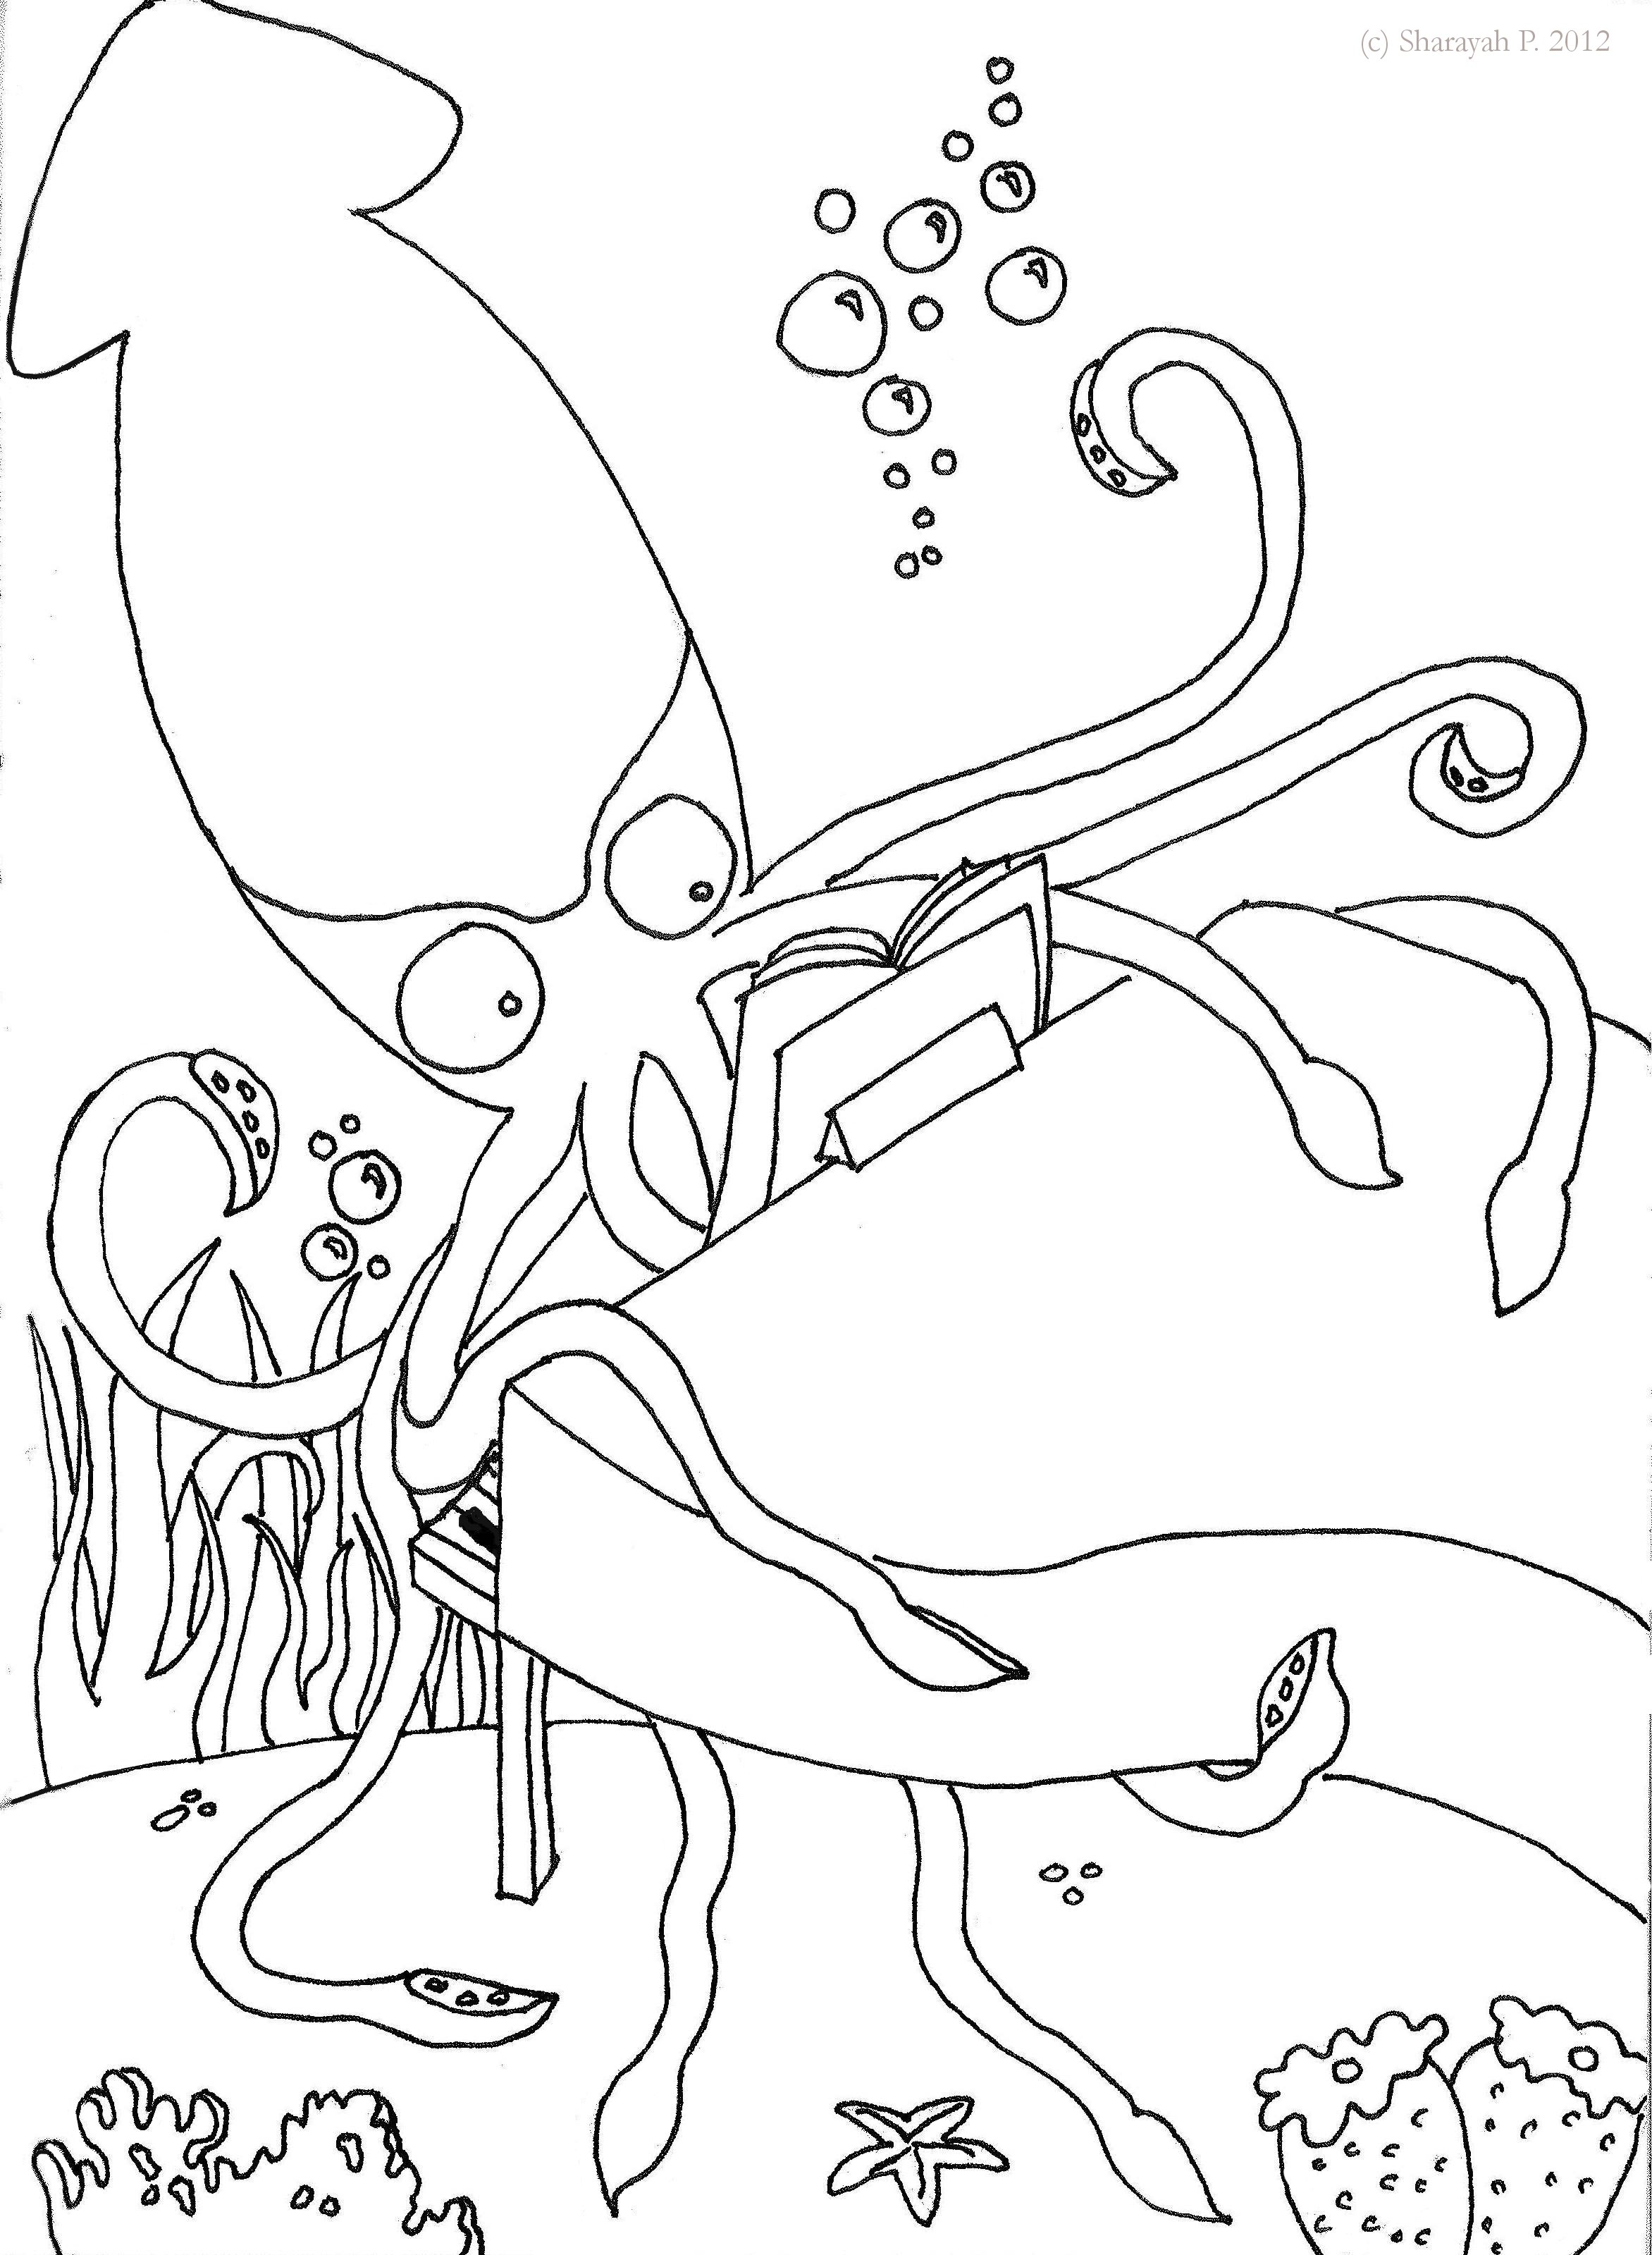 Giant squid coloring coloring pages for Giant squid coloring page